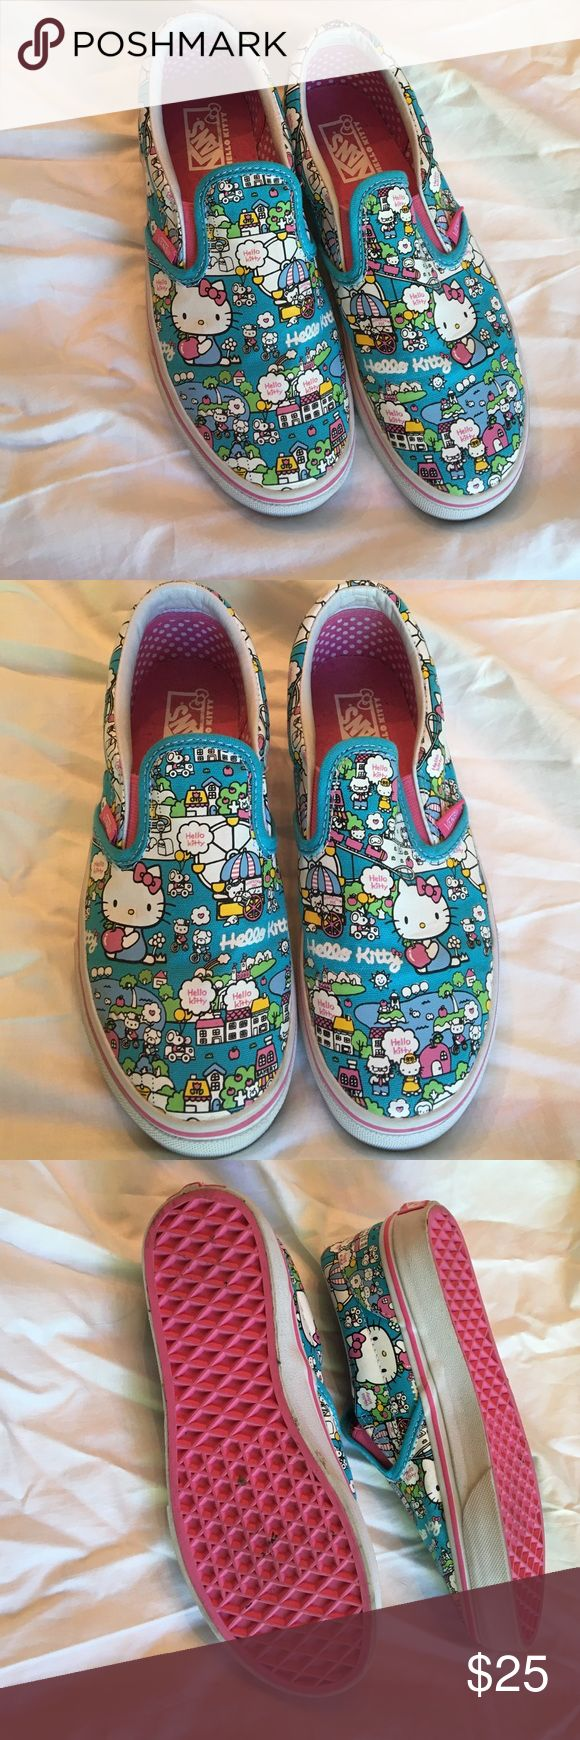 Hello Kitty Vans Youth Size 3 Hello Kitty Vans Youth Size 3 are barely worn. Small marks shown in picture. So cute. Purchased at Hello Kitty sore in Times Square. Printed coated canvas. Vans Shoes Sneakers